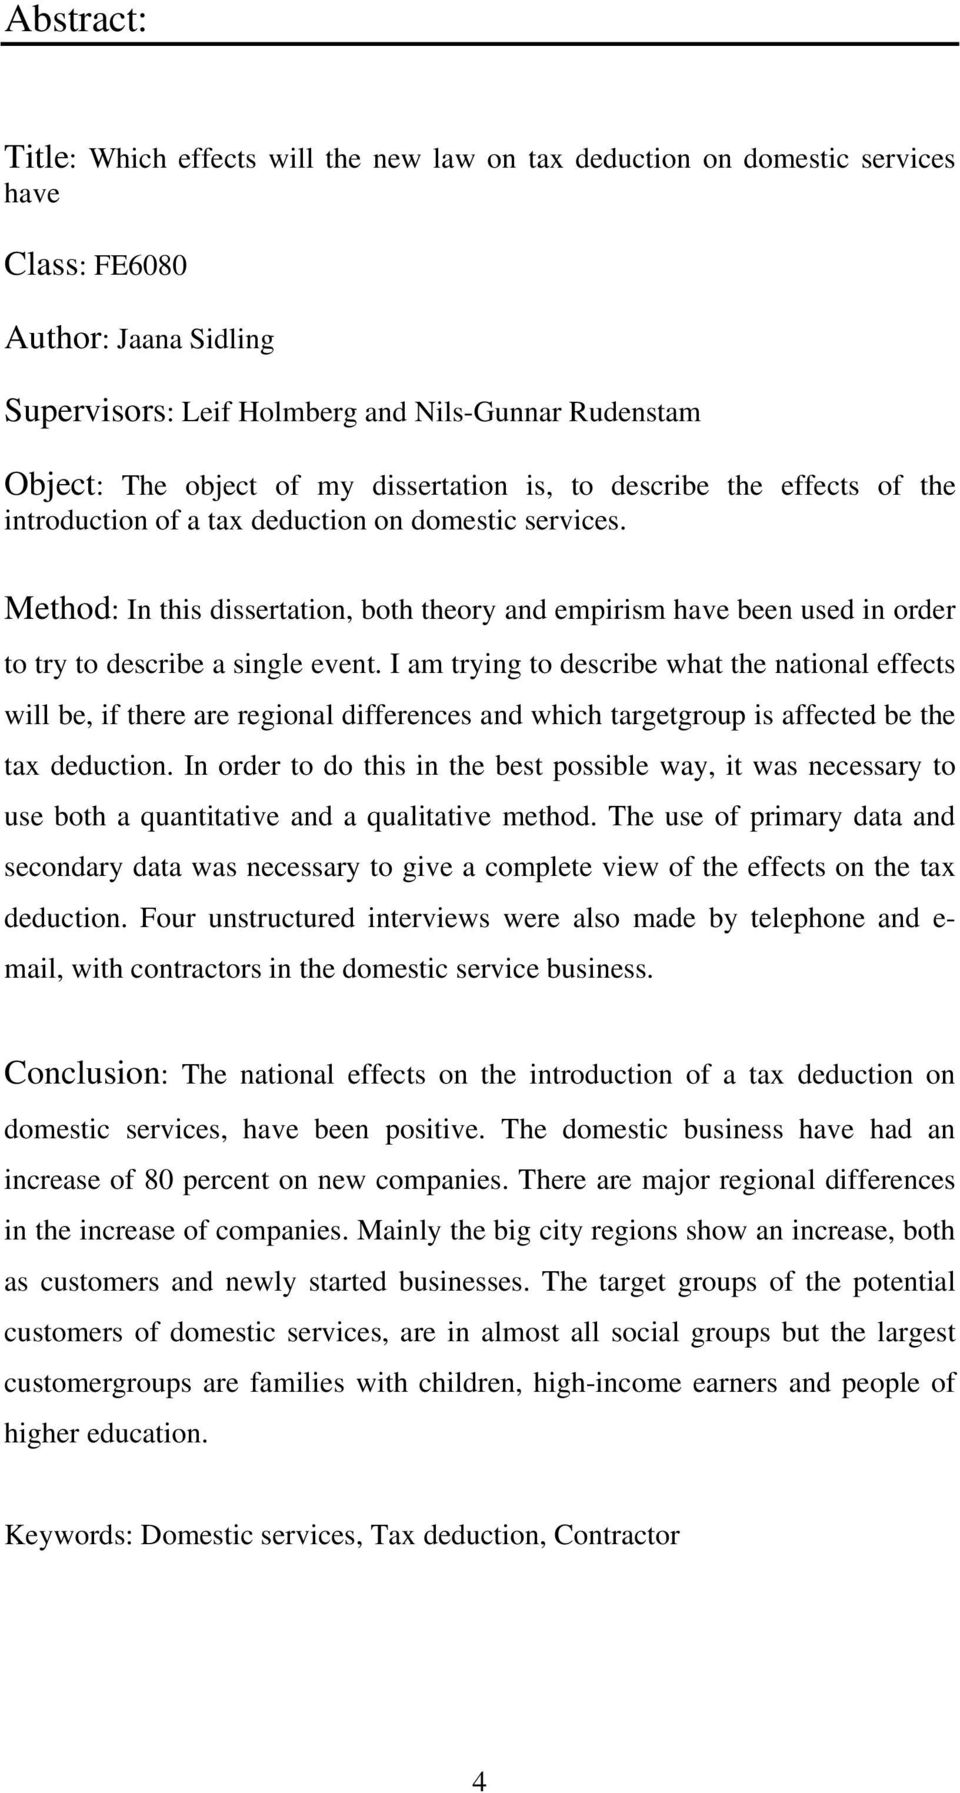 Method: In this dissertation, both theory and empirism have been used in order to try to describe a single event.